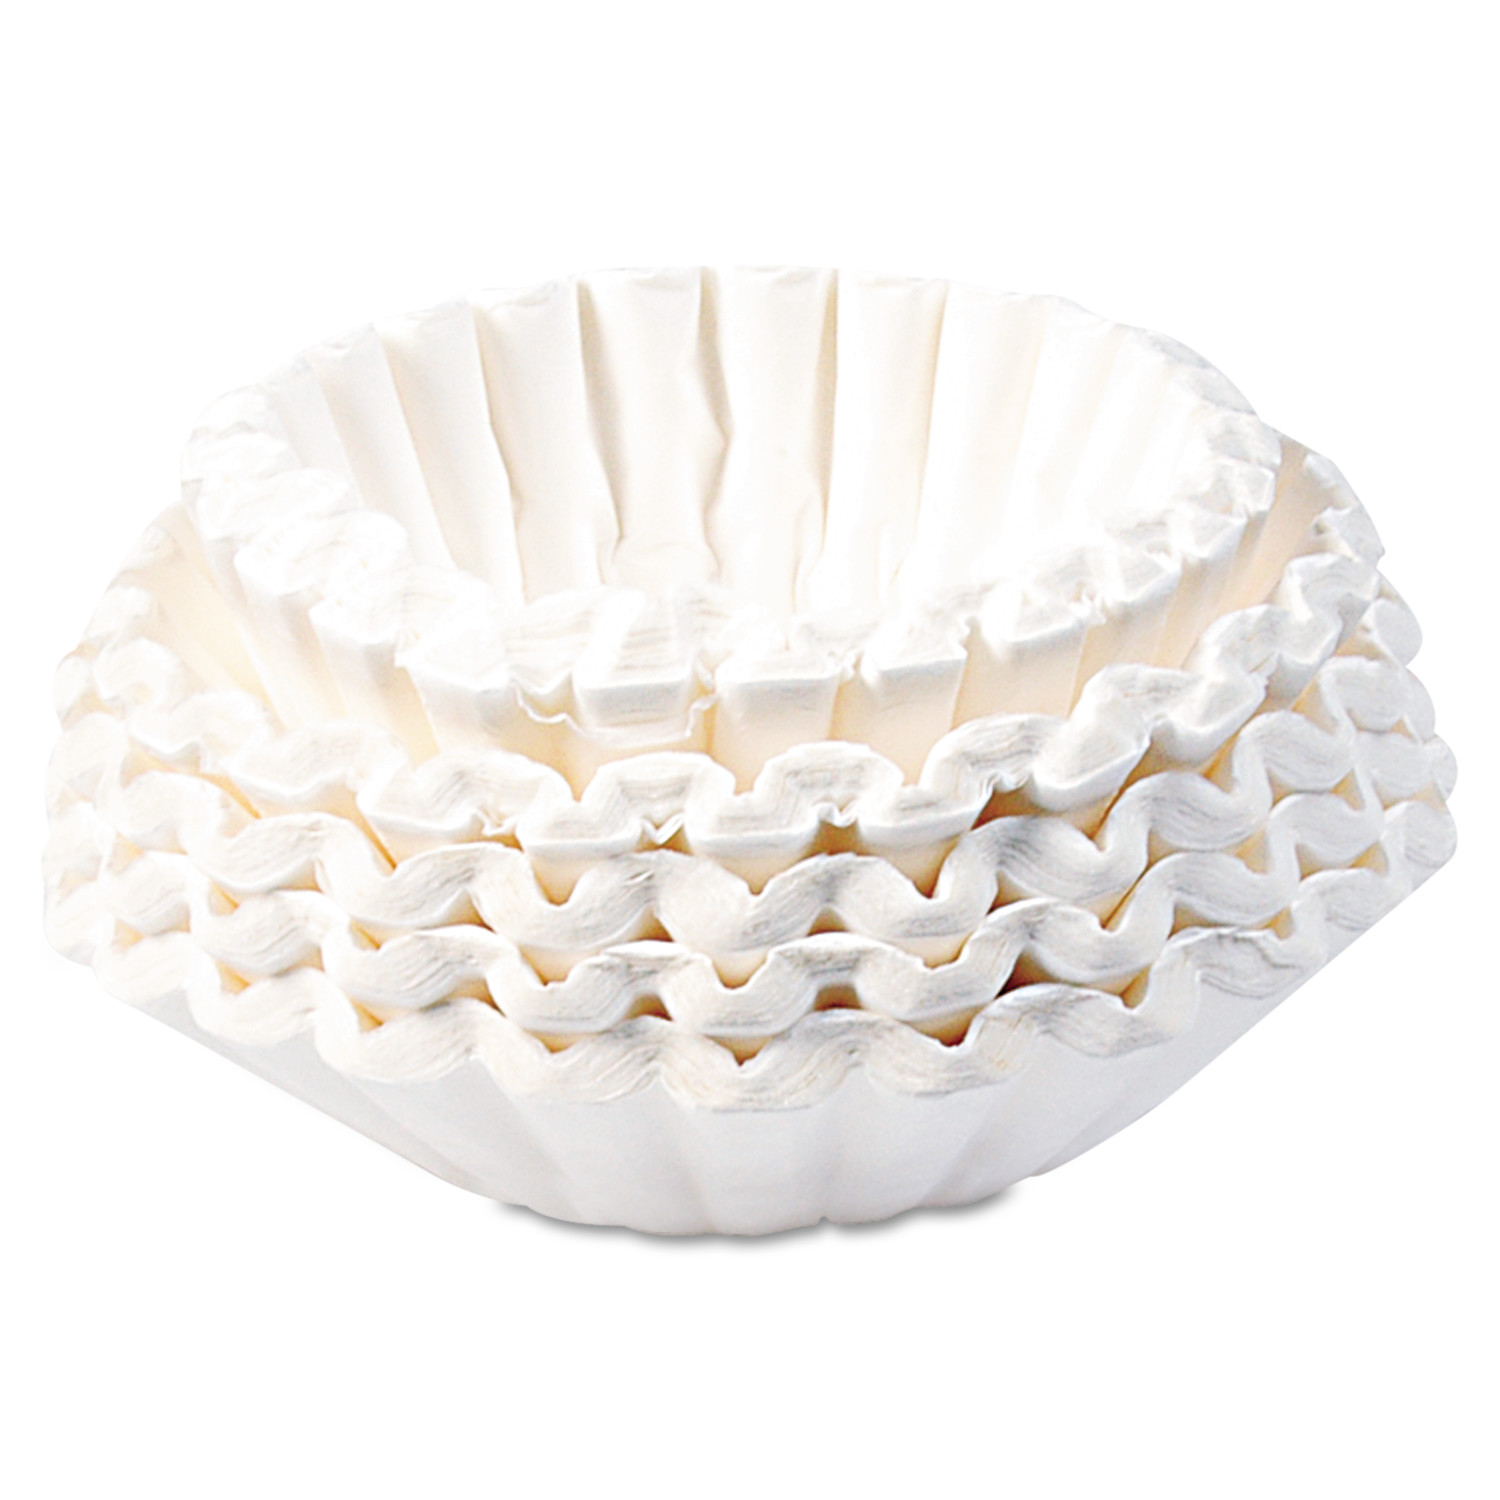 bunn commercial coffee filters 12cup size 1000pack - Bunn Commercial Coffee Maker